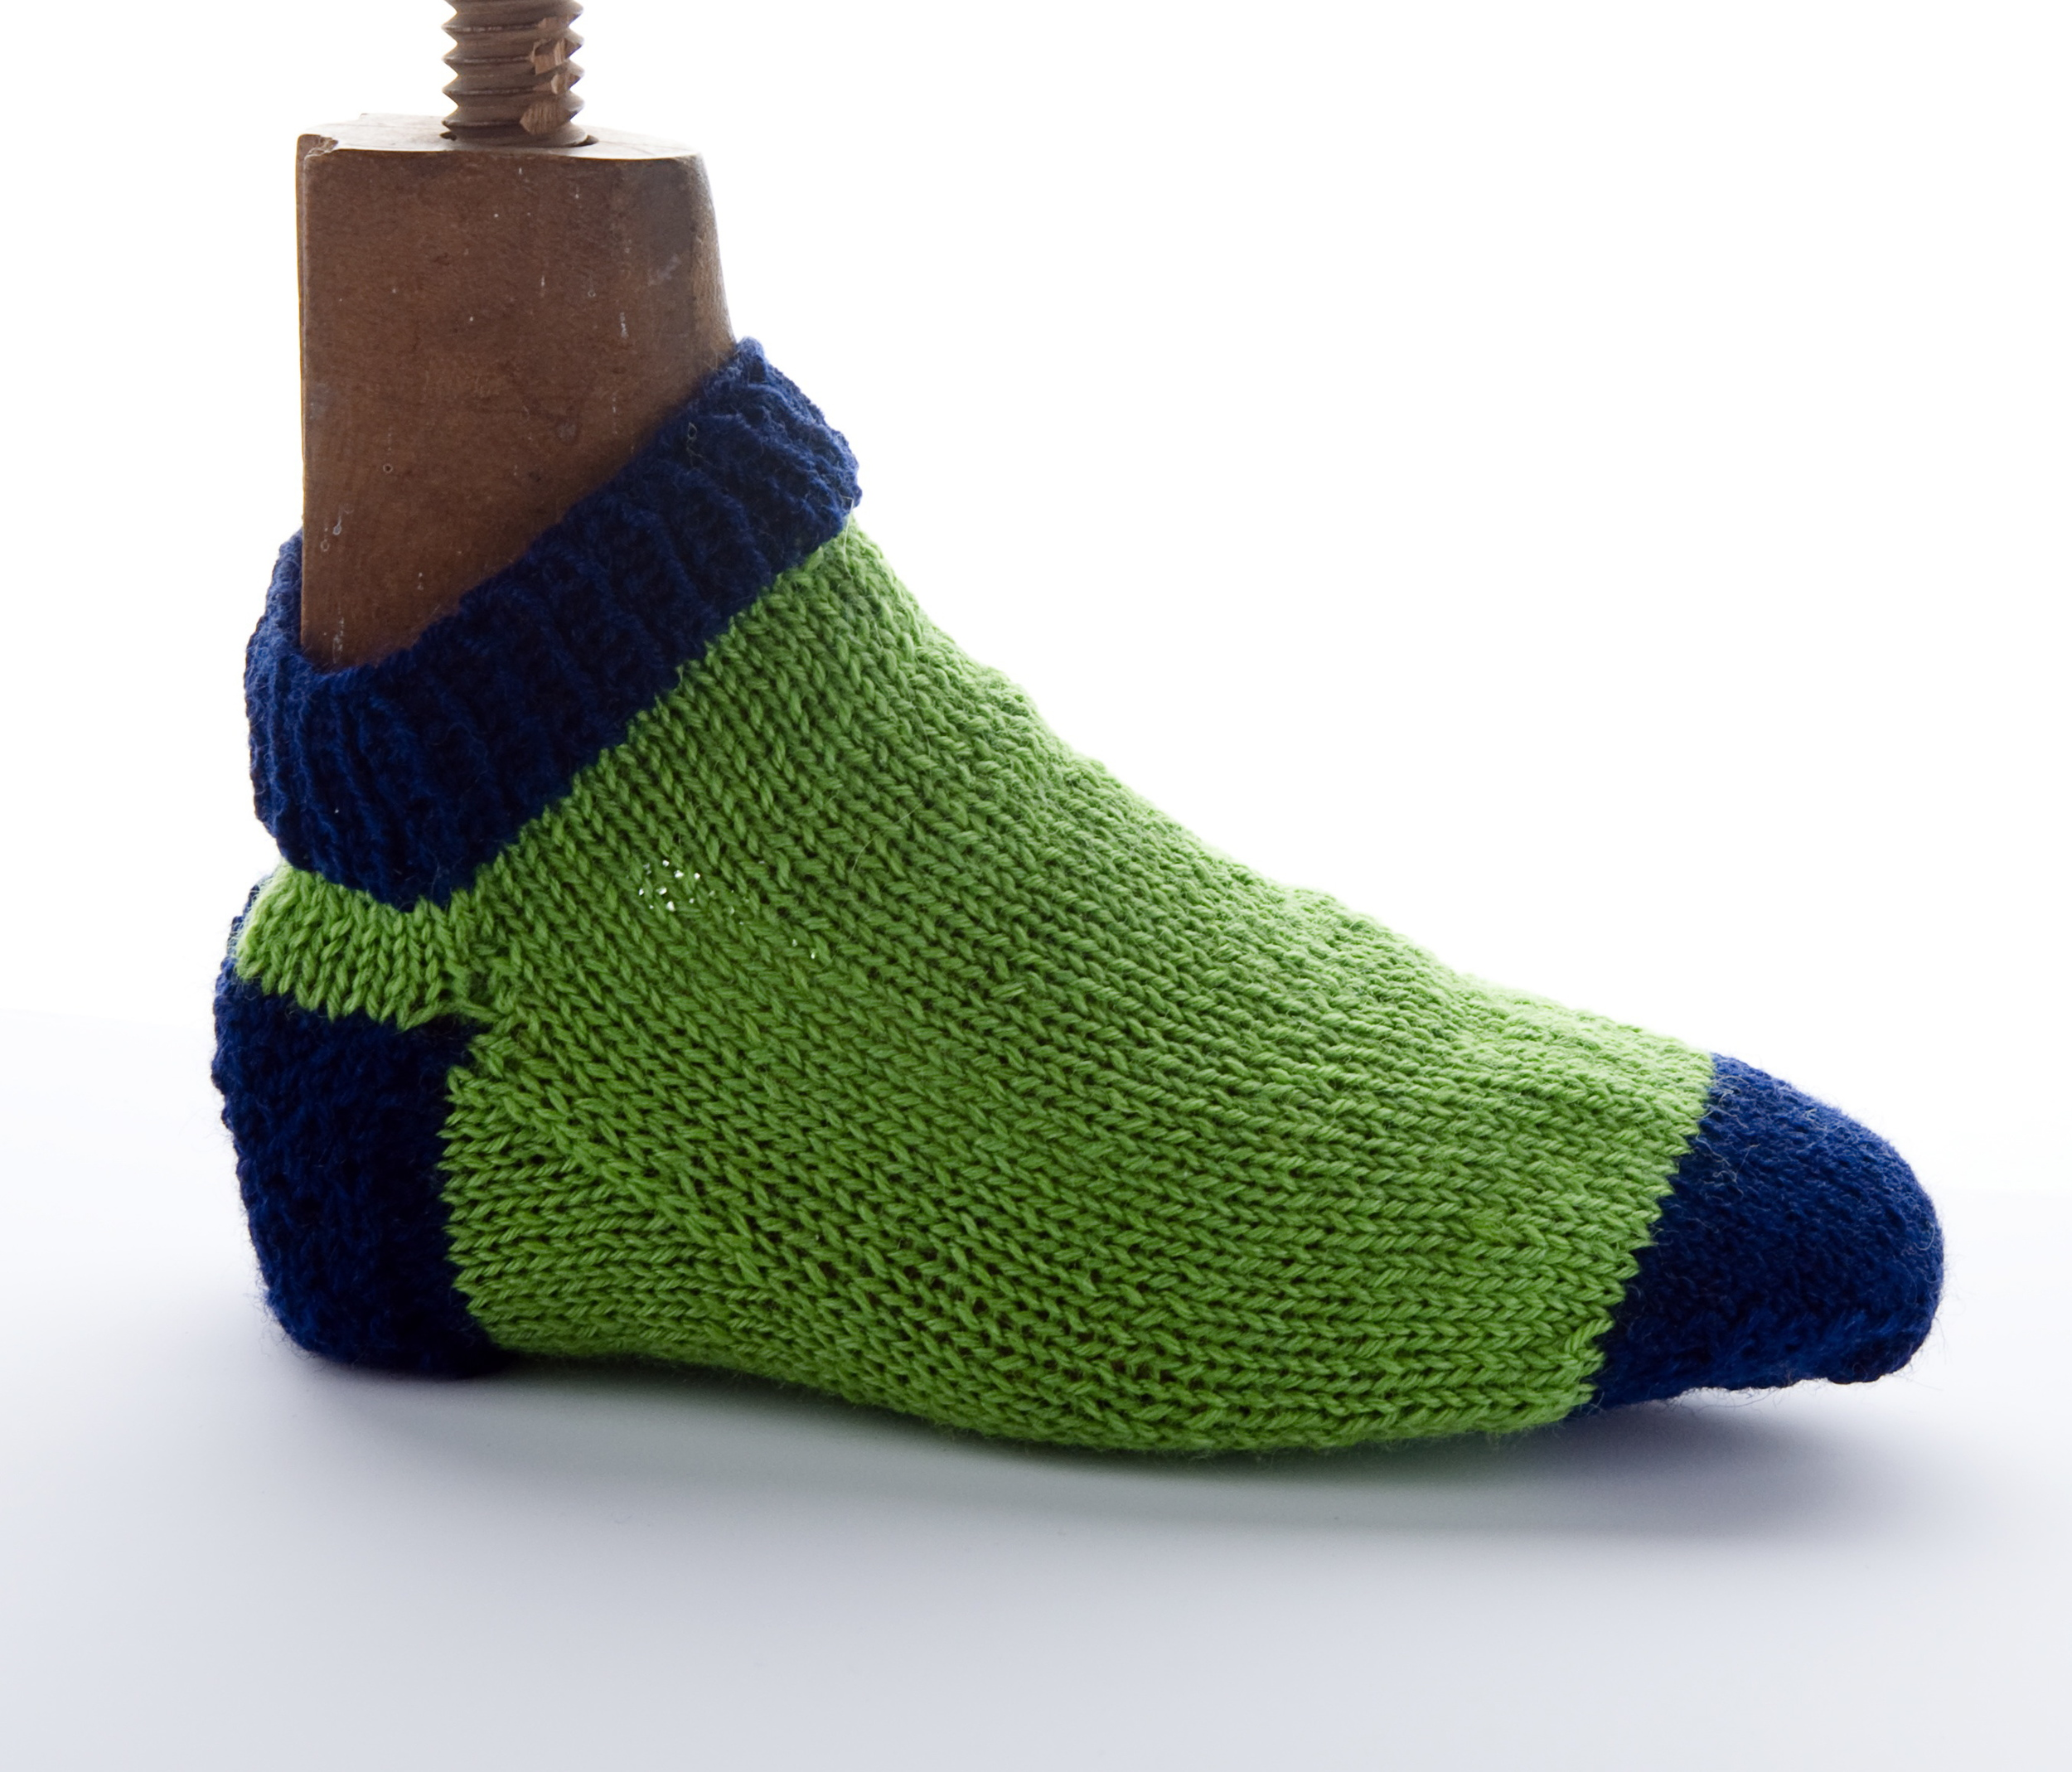 (Image by Sean Money, The Charleston Museum) (Sock by Tamara Goff)